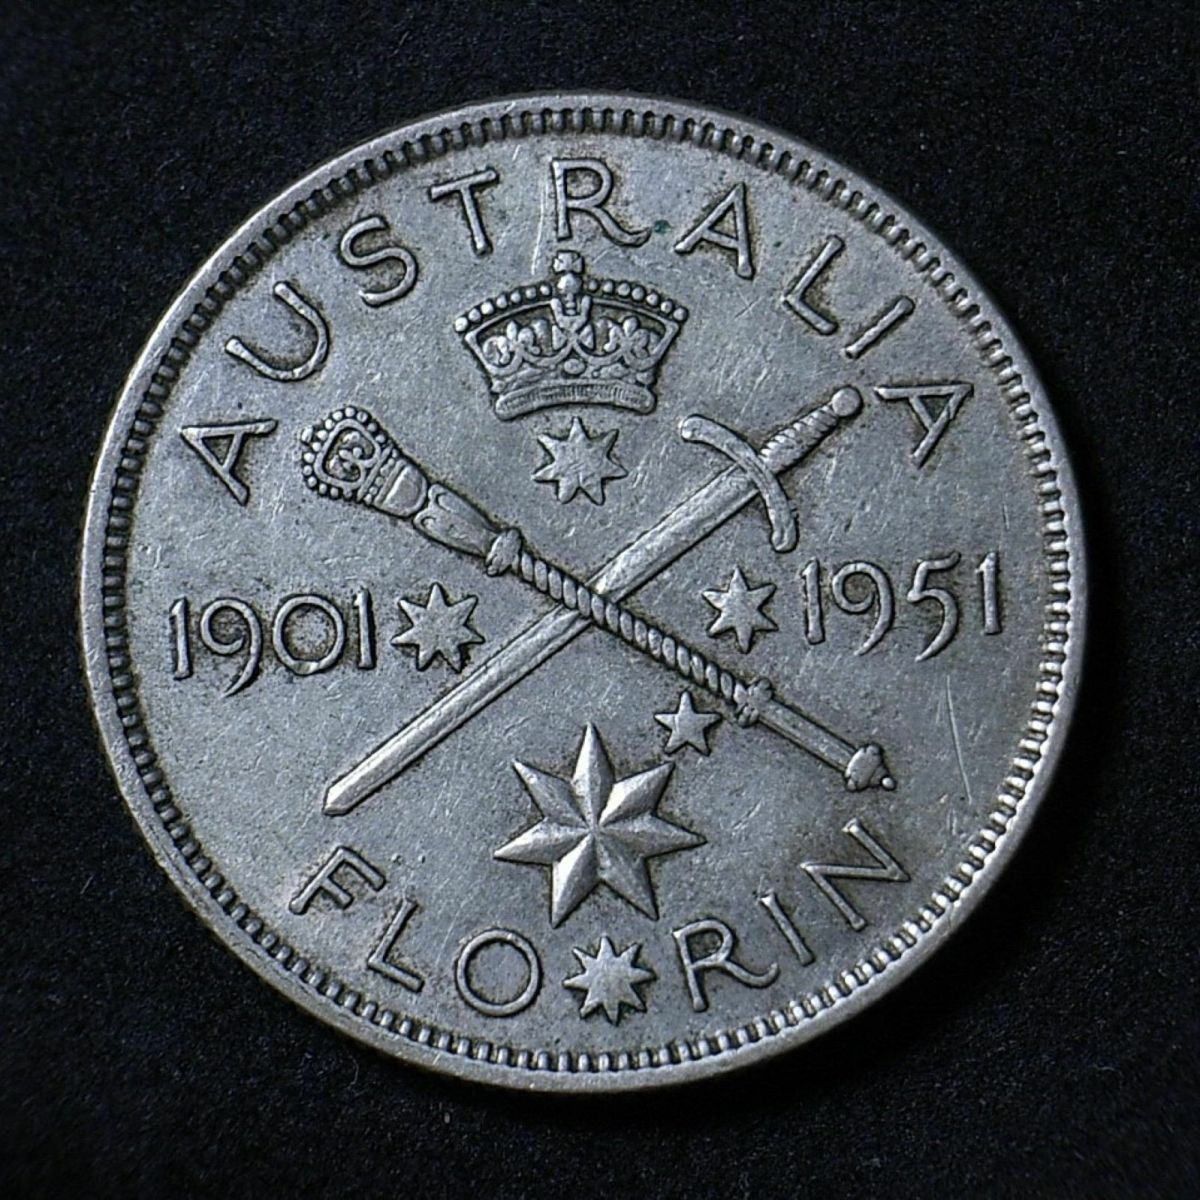 Aussie 1951 Federation florin reverse close up showing detail on the coin